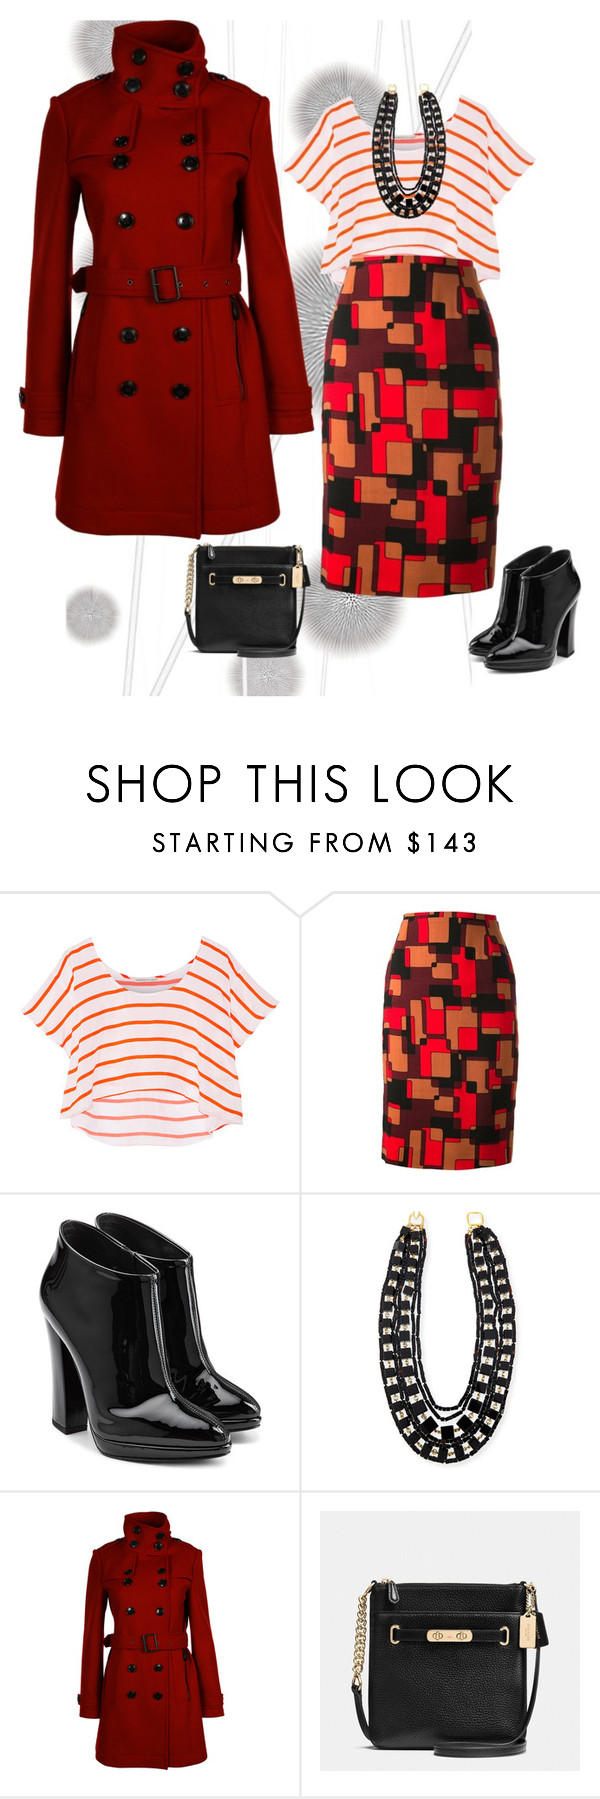 """""""I'd wear that!"""" by missgiven ❤ liked on Polyvore featuring Komar, Rebecca Minkoff, Jean-Louis Scherrer, Giuseppe Zanotti, Kenneth Jay Lane, Burberry and Coach"""